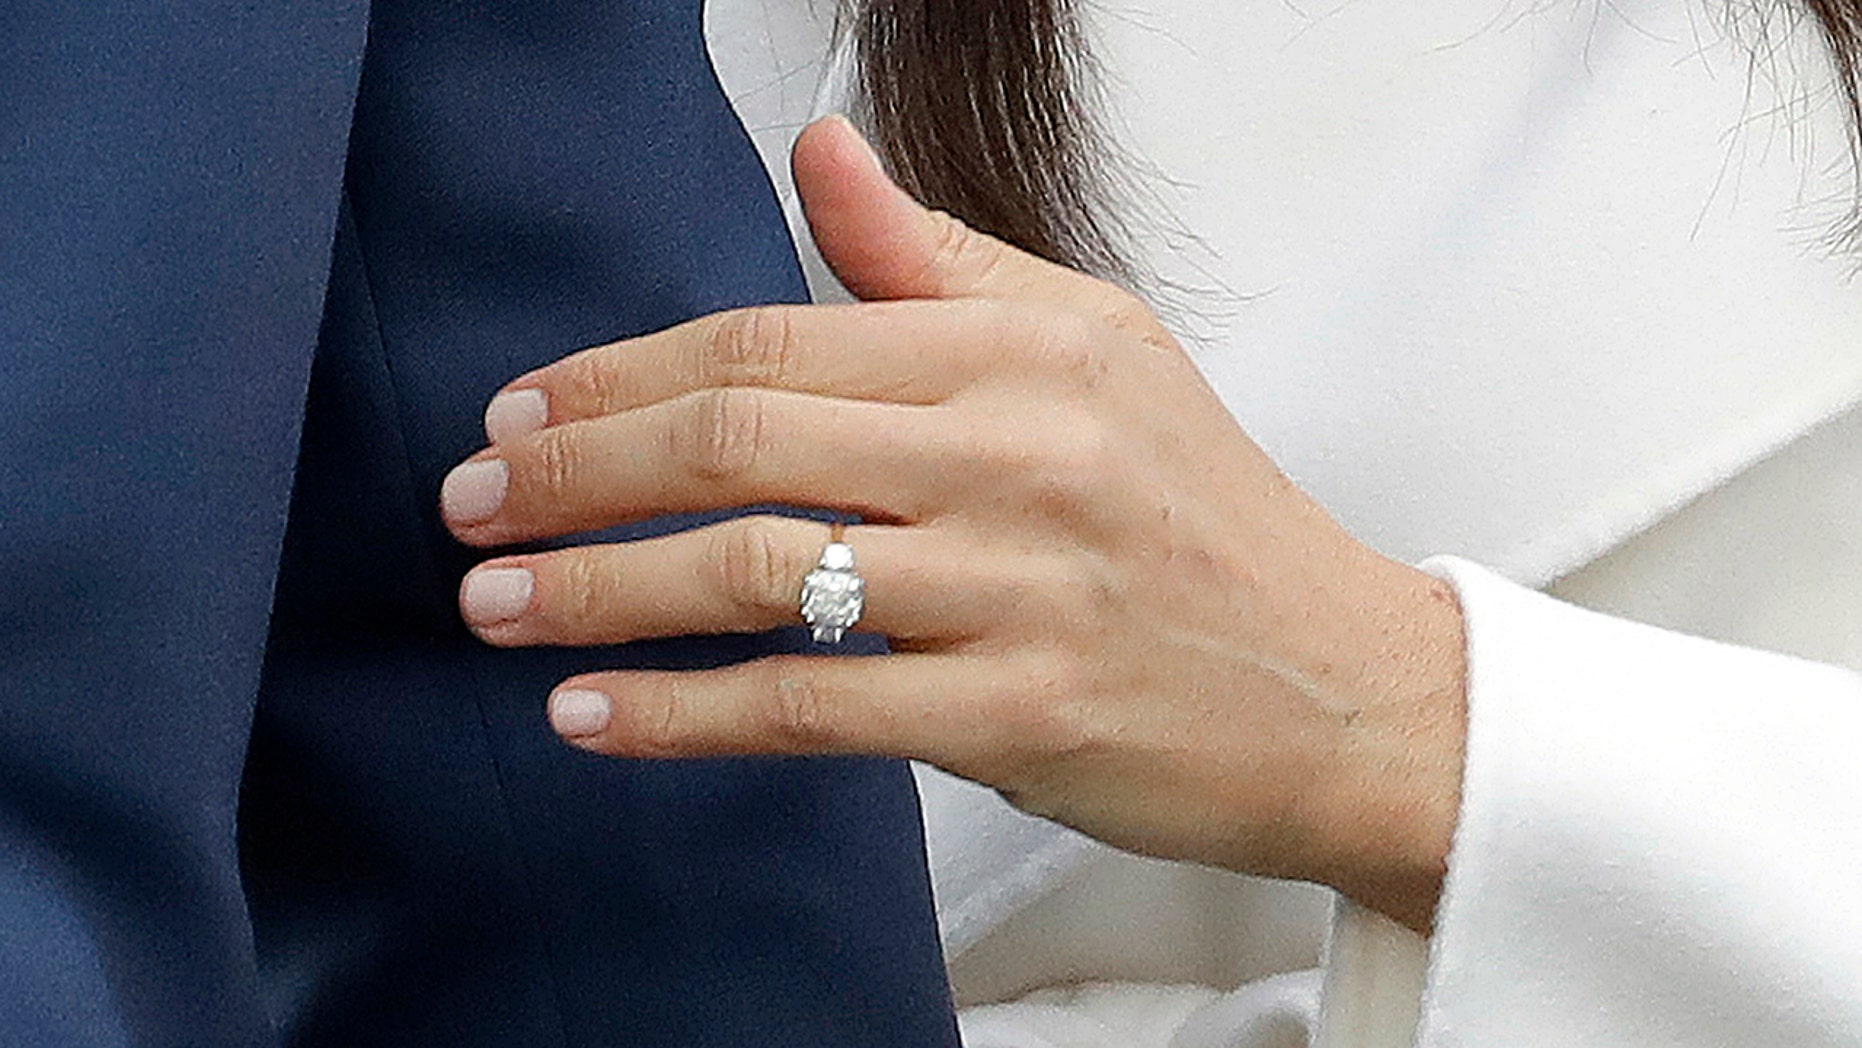 Meghan Markle's engagement ring is crafted with diamonds from Princess Diana's personal collection.